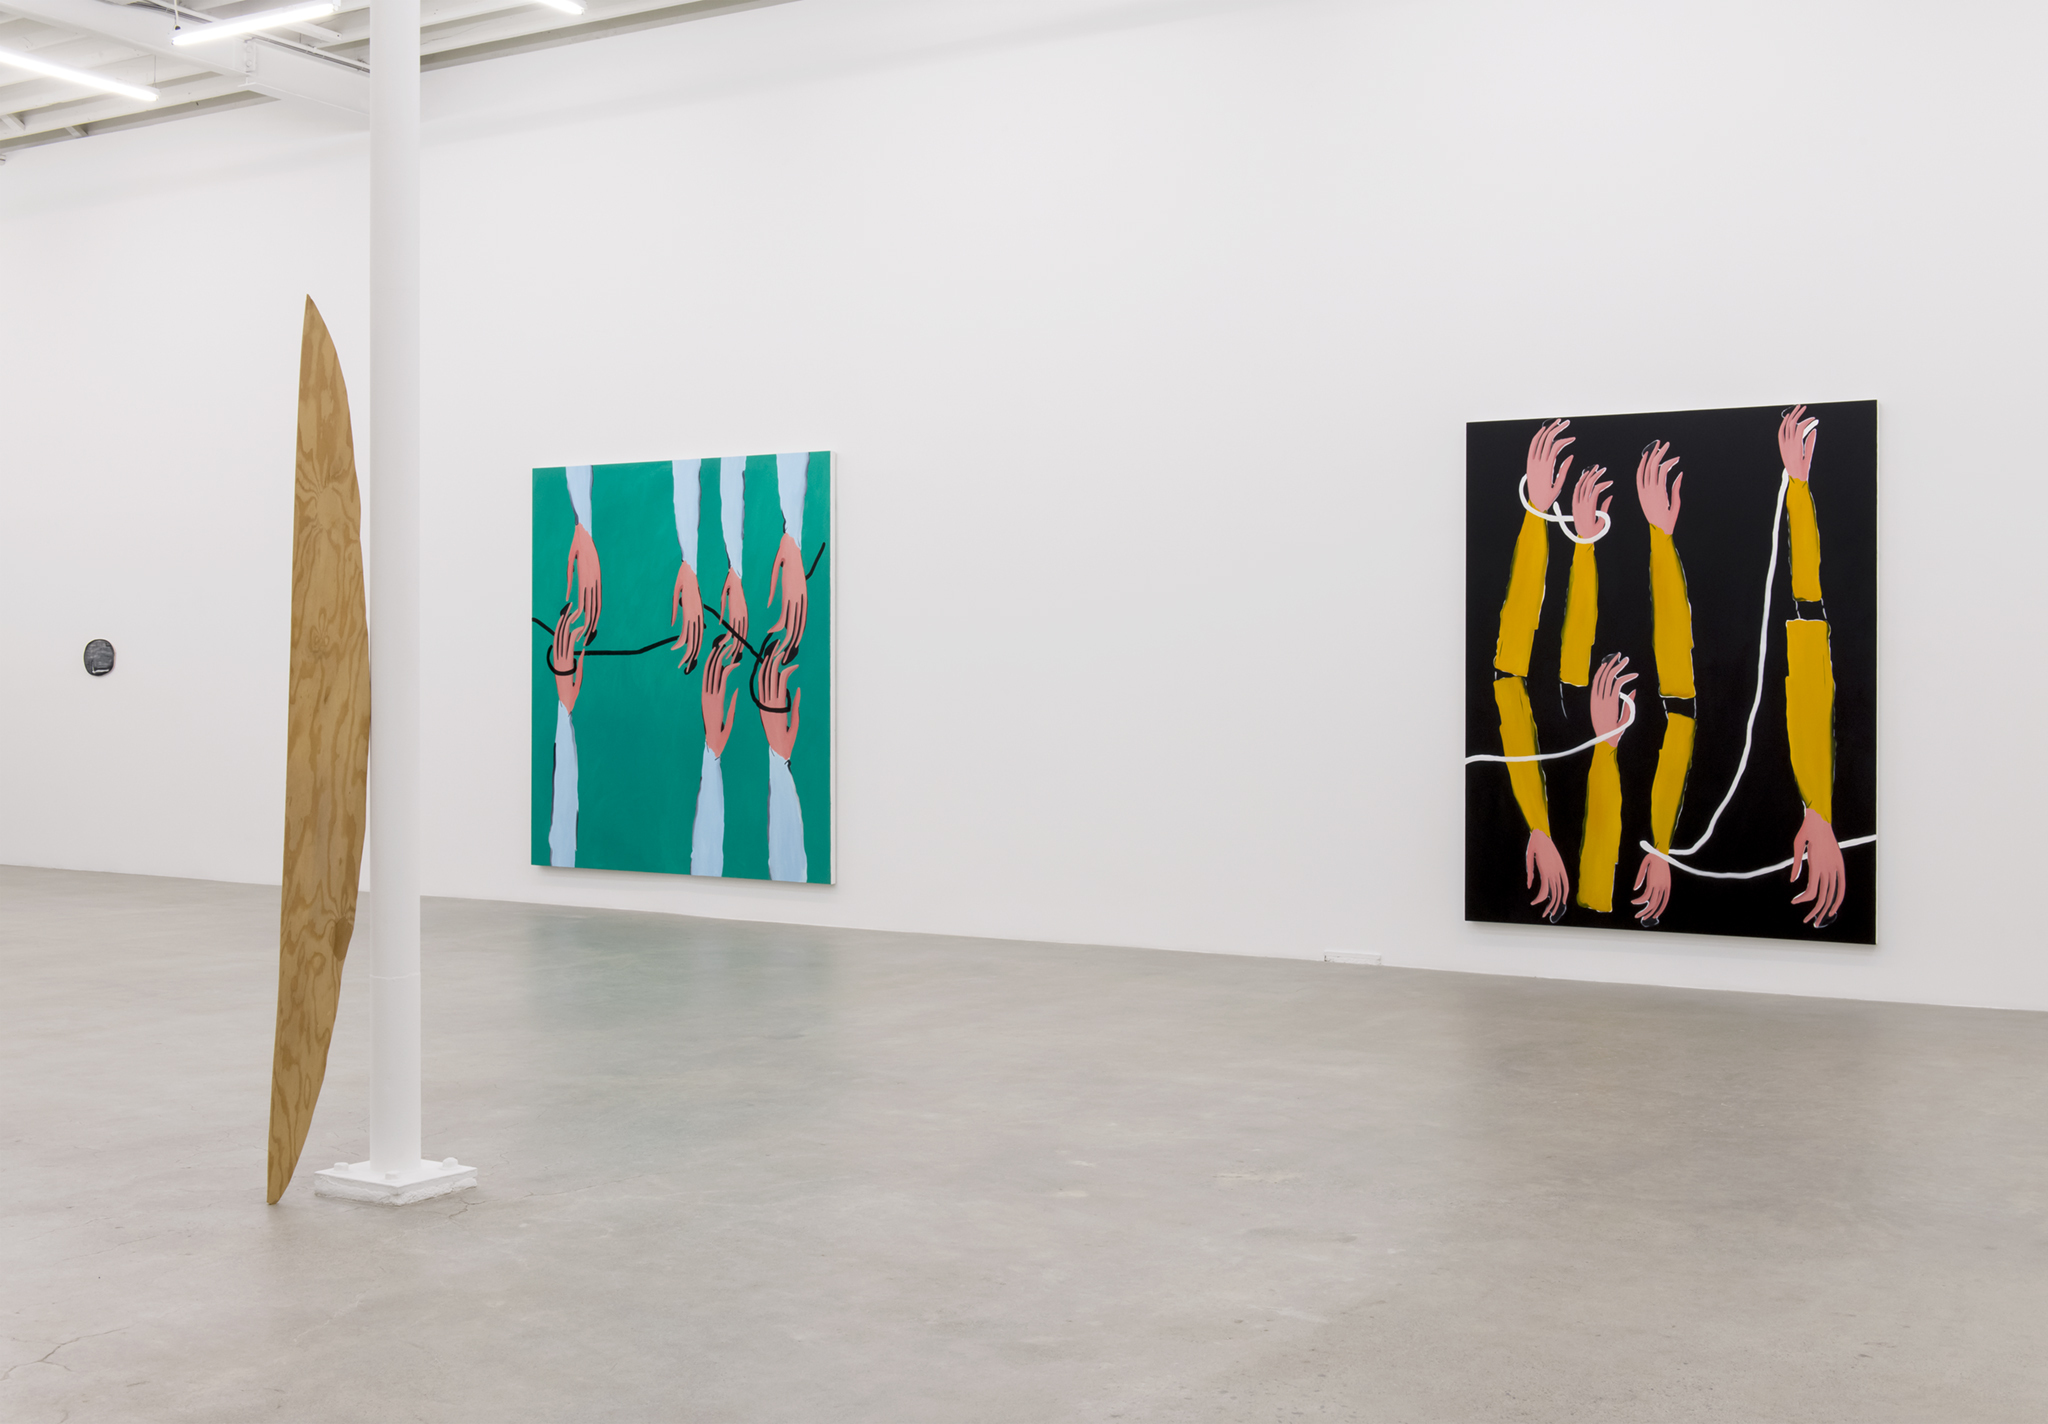 ​Elizabeth McIntosh, Monique Mouton, Silke Otto-Knapp, installation view, Catriona Jeffries, 2017 ​ by